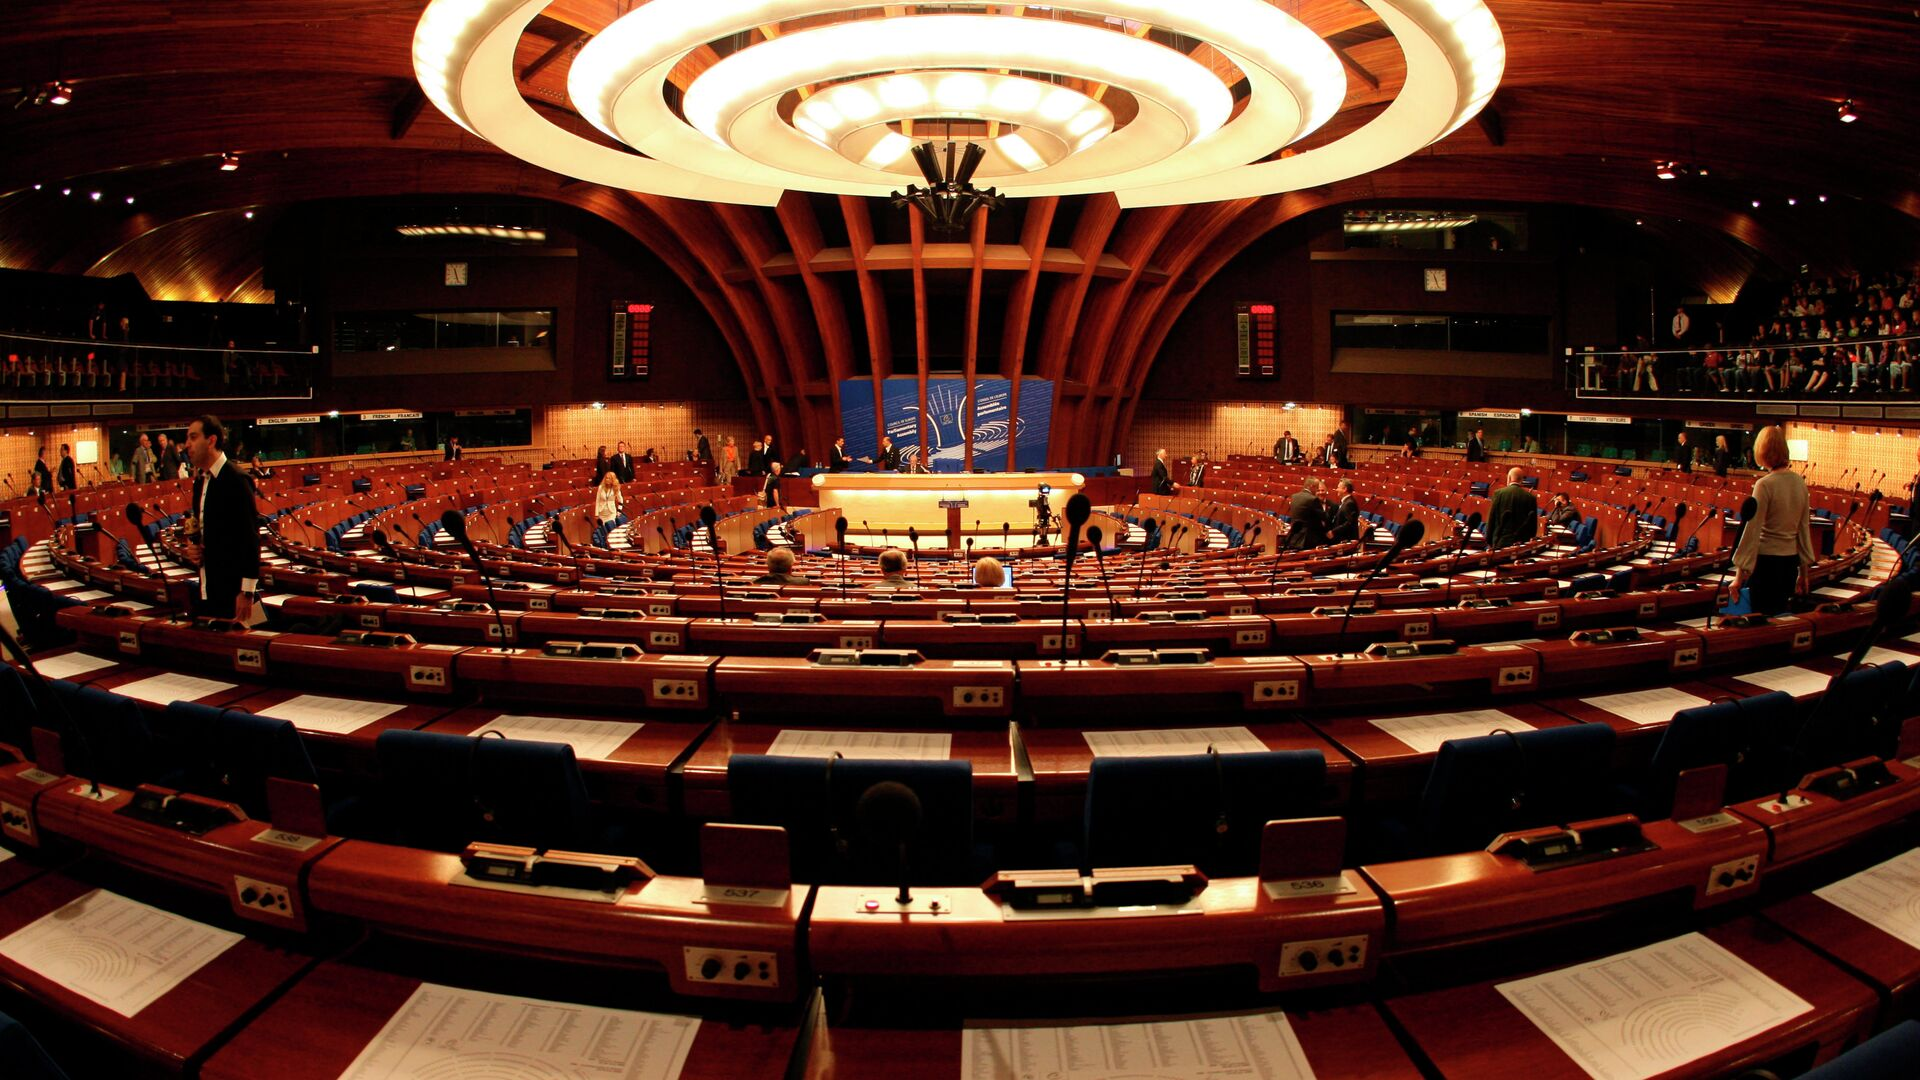 General view of the plenary room of the Council of Europe in Strasbourg, eastern France - Sputnik Mundo, 1920, 21.06.2021